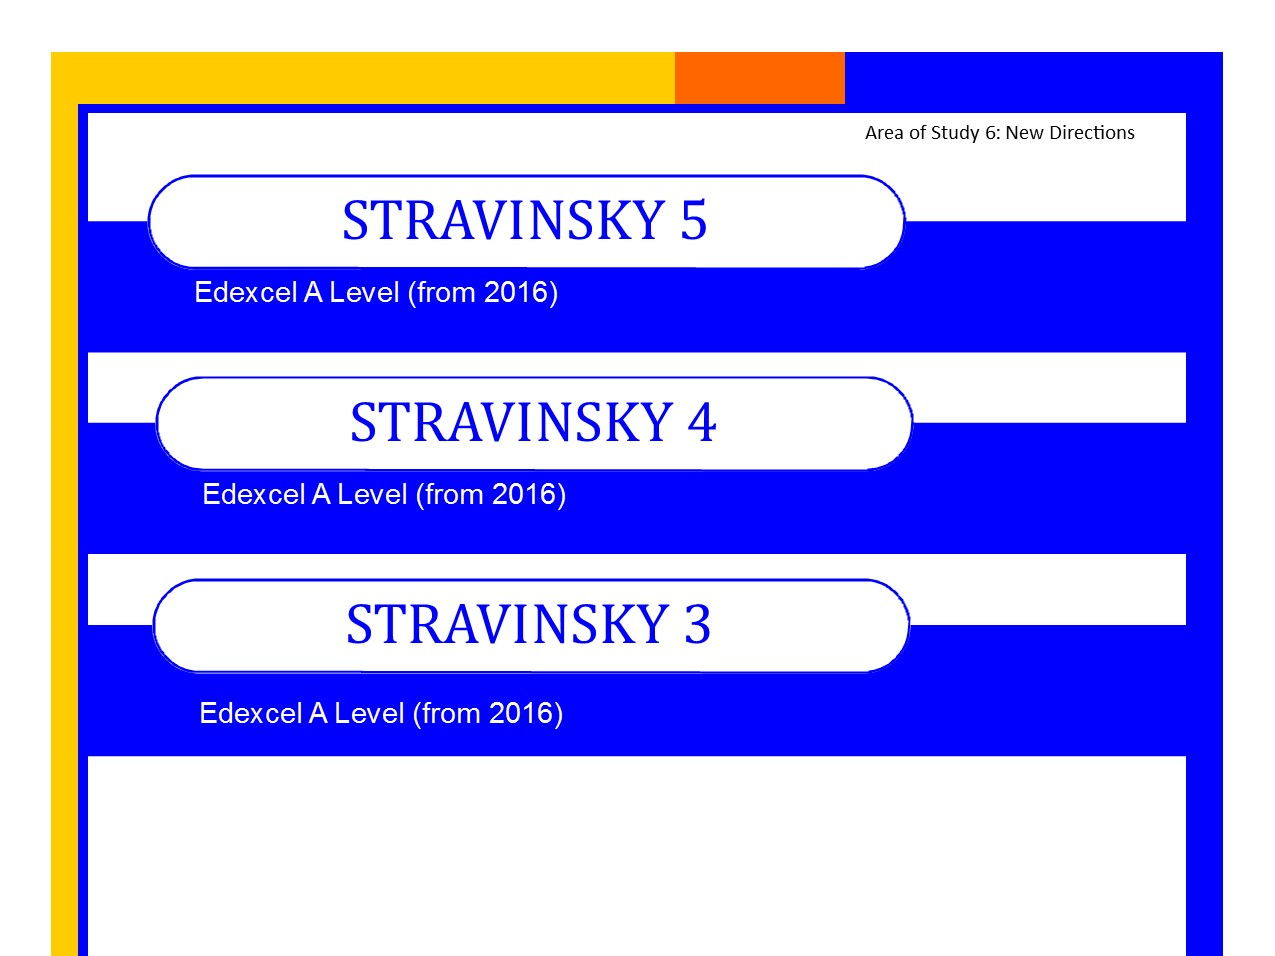 Bundle+ of Edexcel Music A level (from 2016) Stravinsky worksheets 3,4 and 5 PLUS Elements of Music summary sheets.